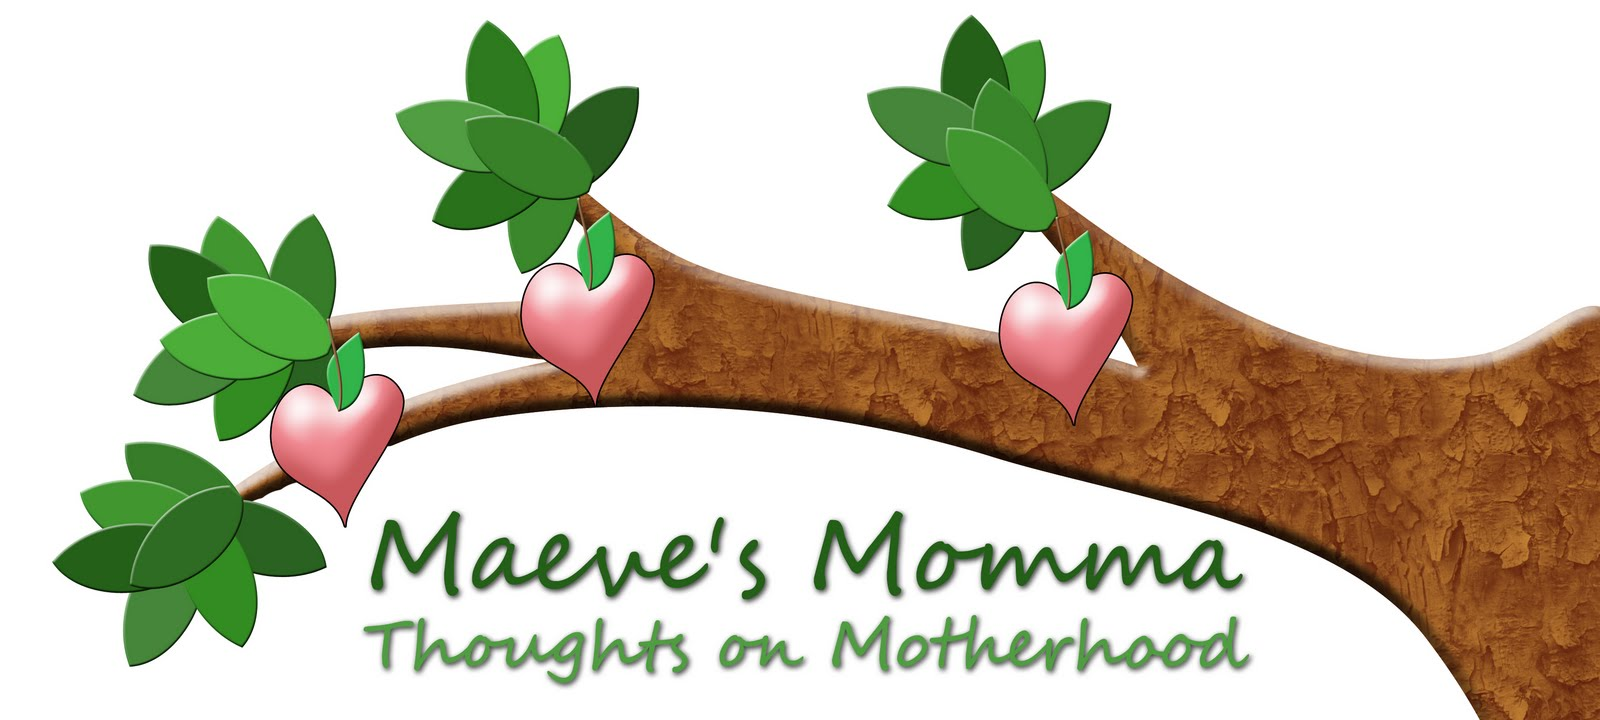 Maeve's Momma: Thoughts on Motherhood